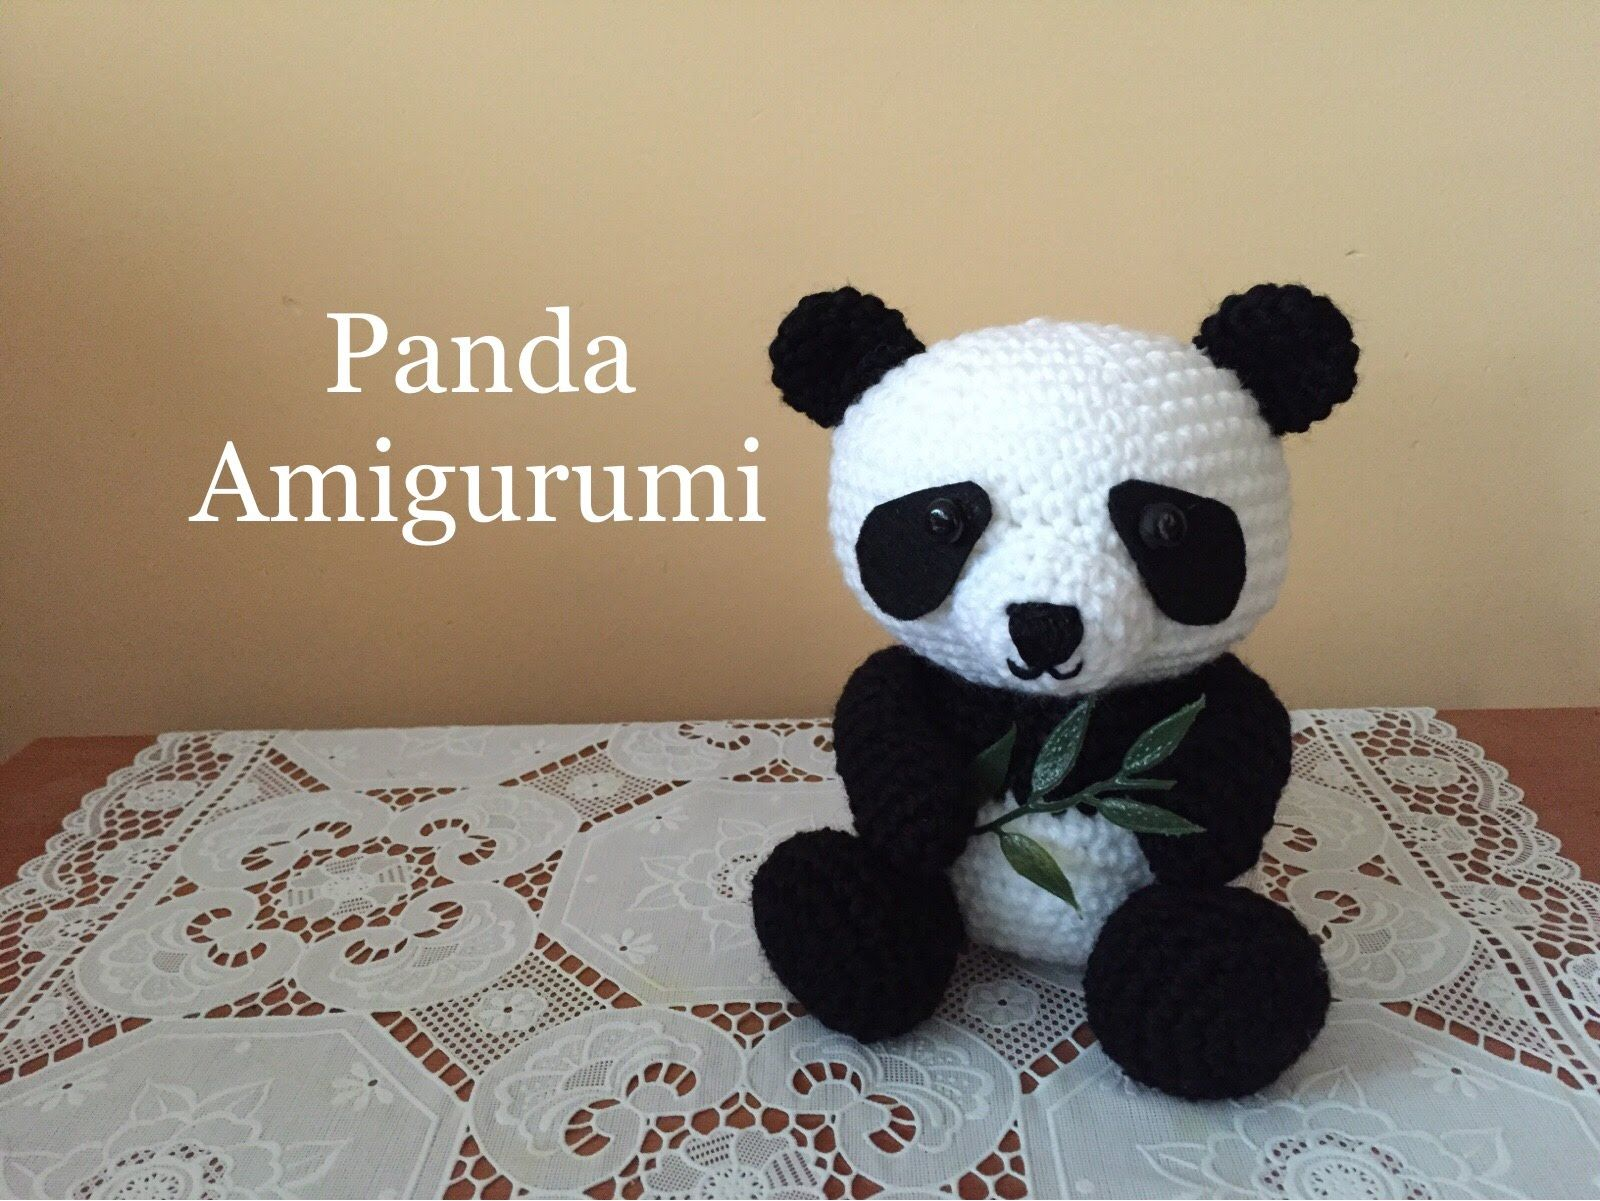 Amigurumi Panda Ohje : Panda Amigurumi (tutorial) knitt and crochet Pinterest ...